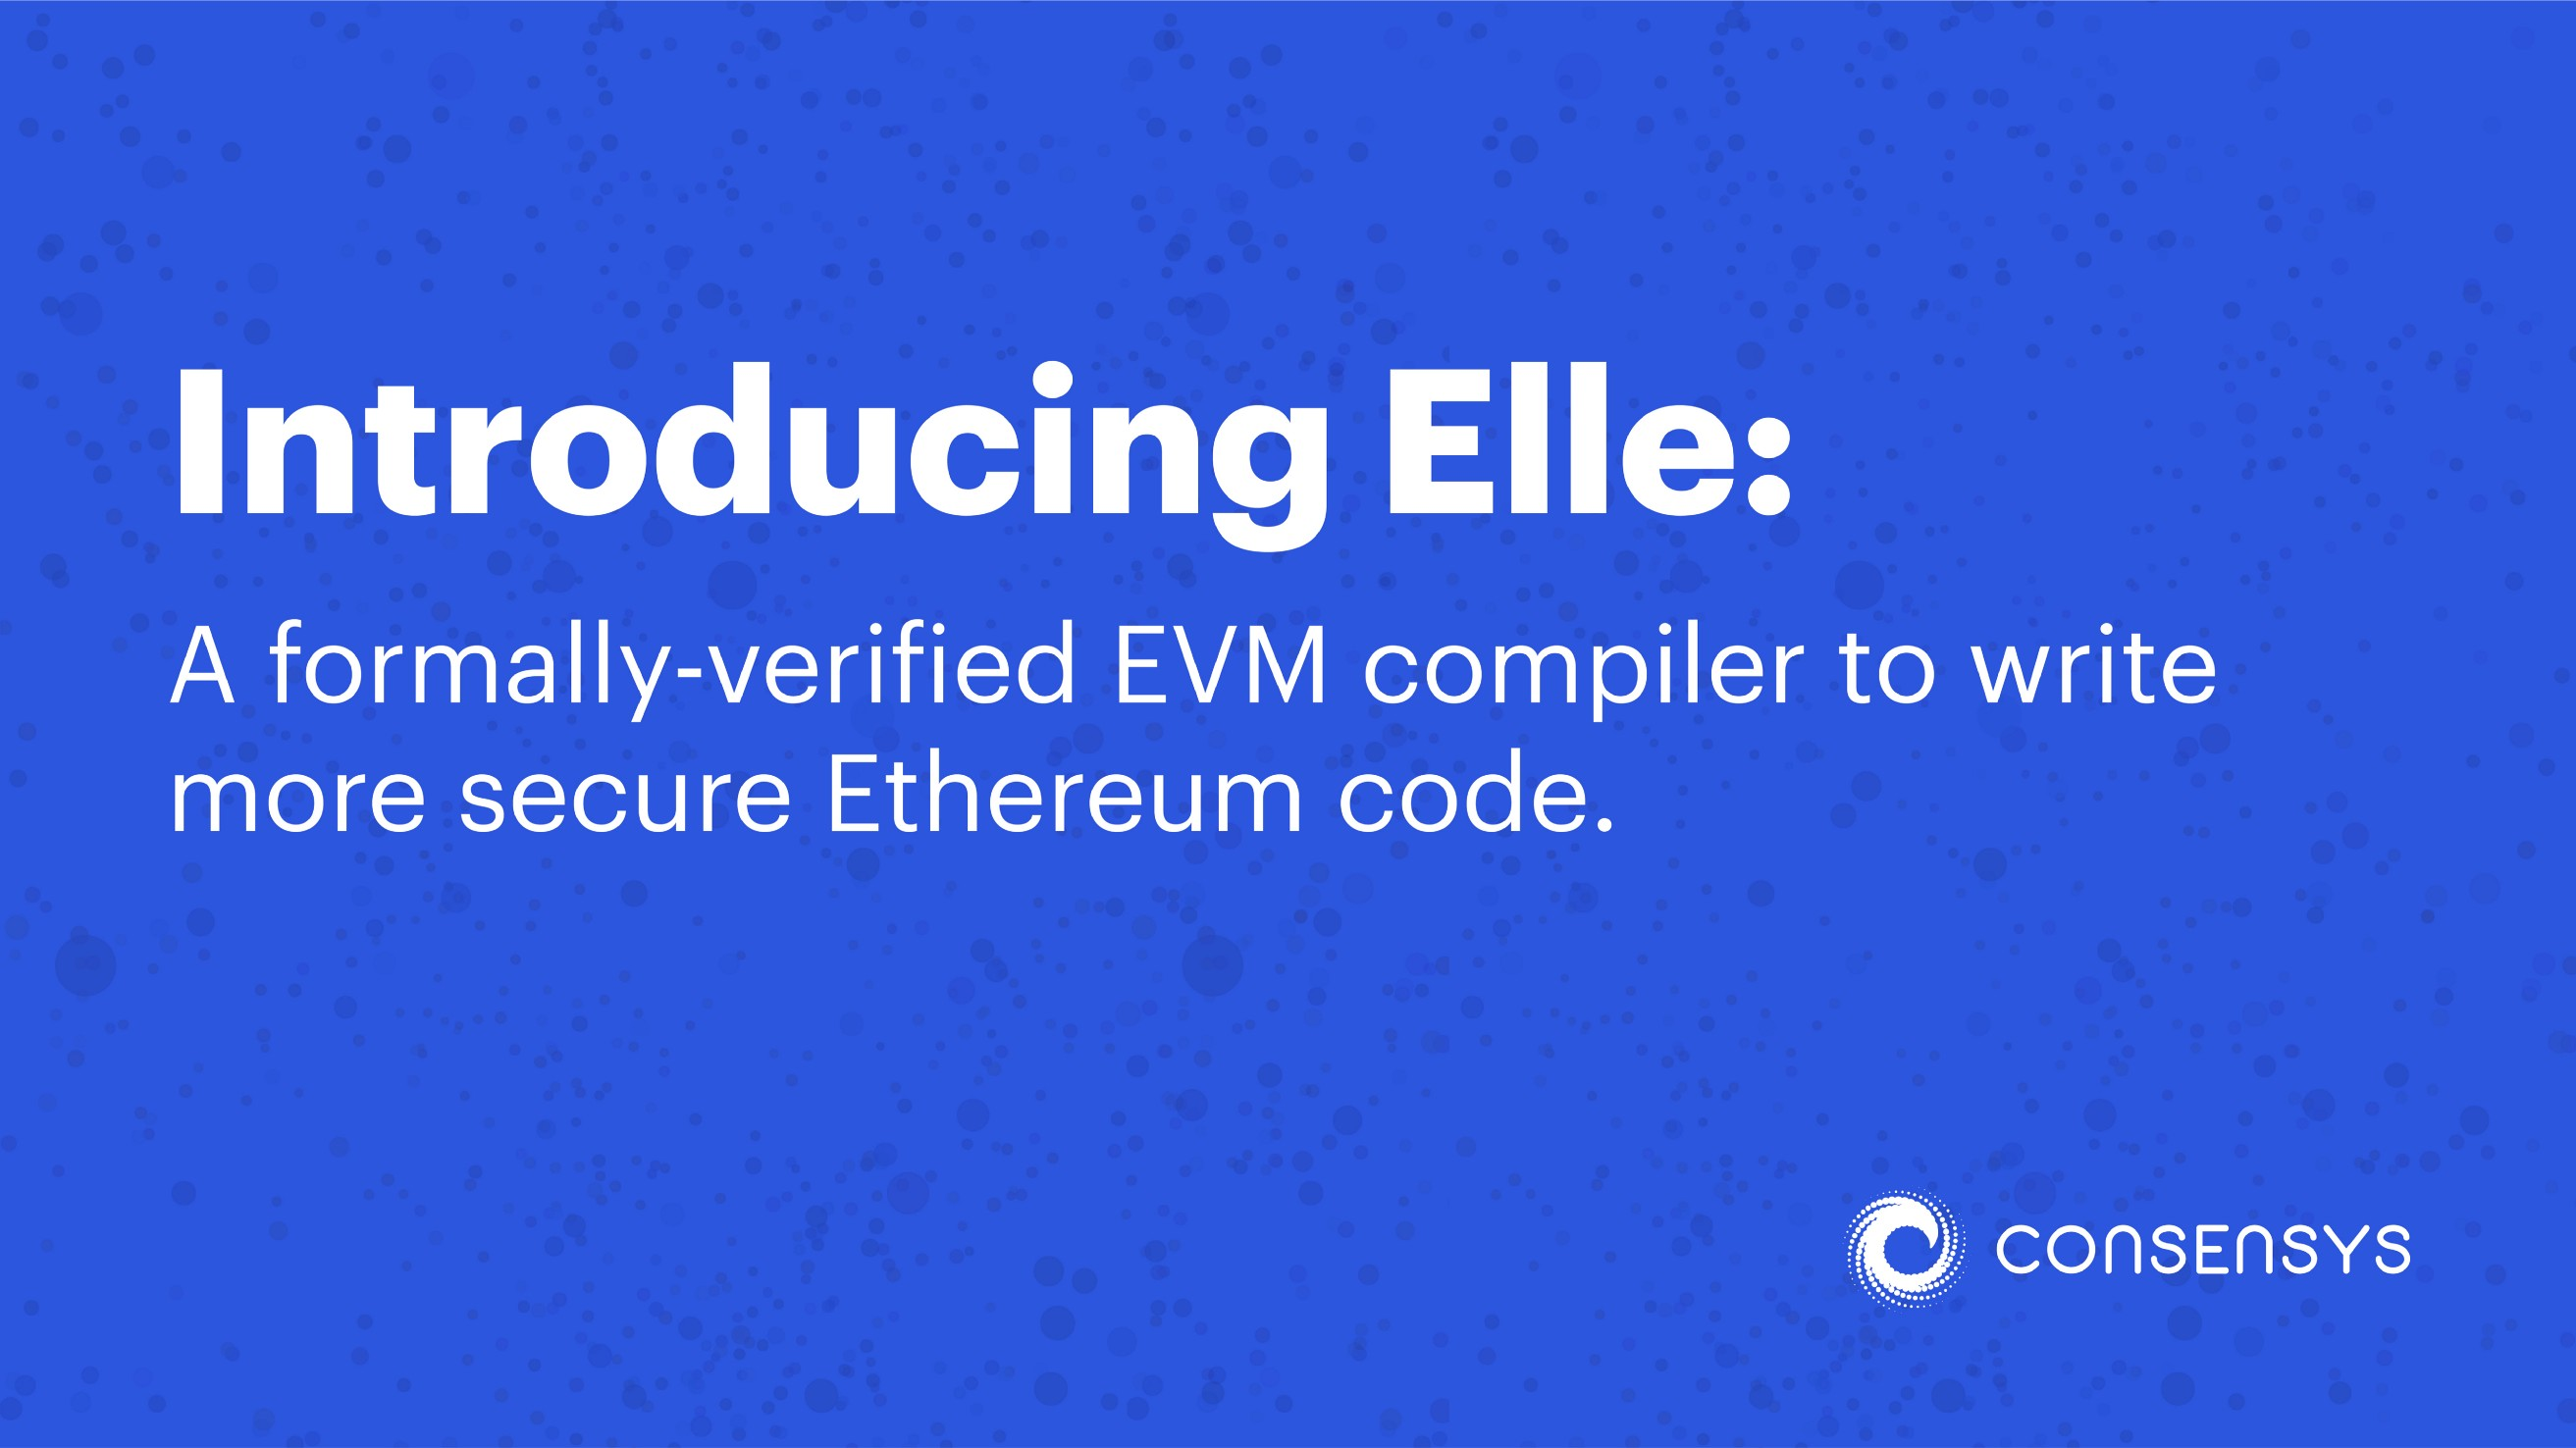 Introducing Elle: A formally-verified EVM compiler to write more